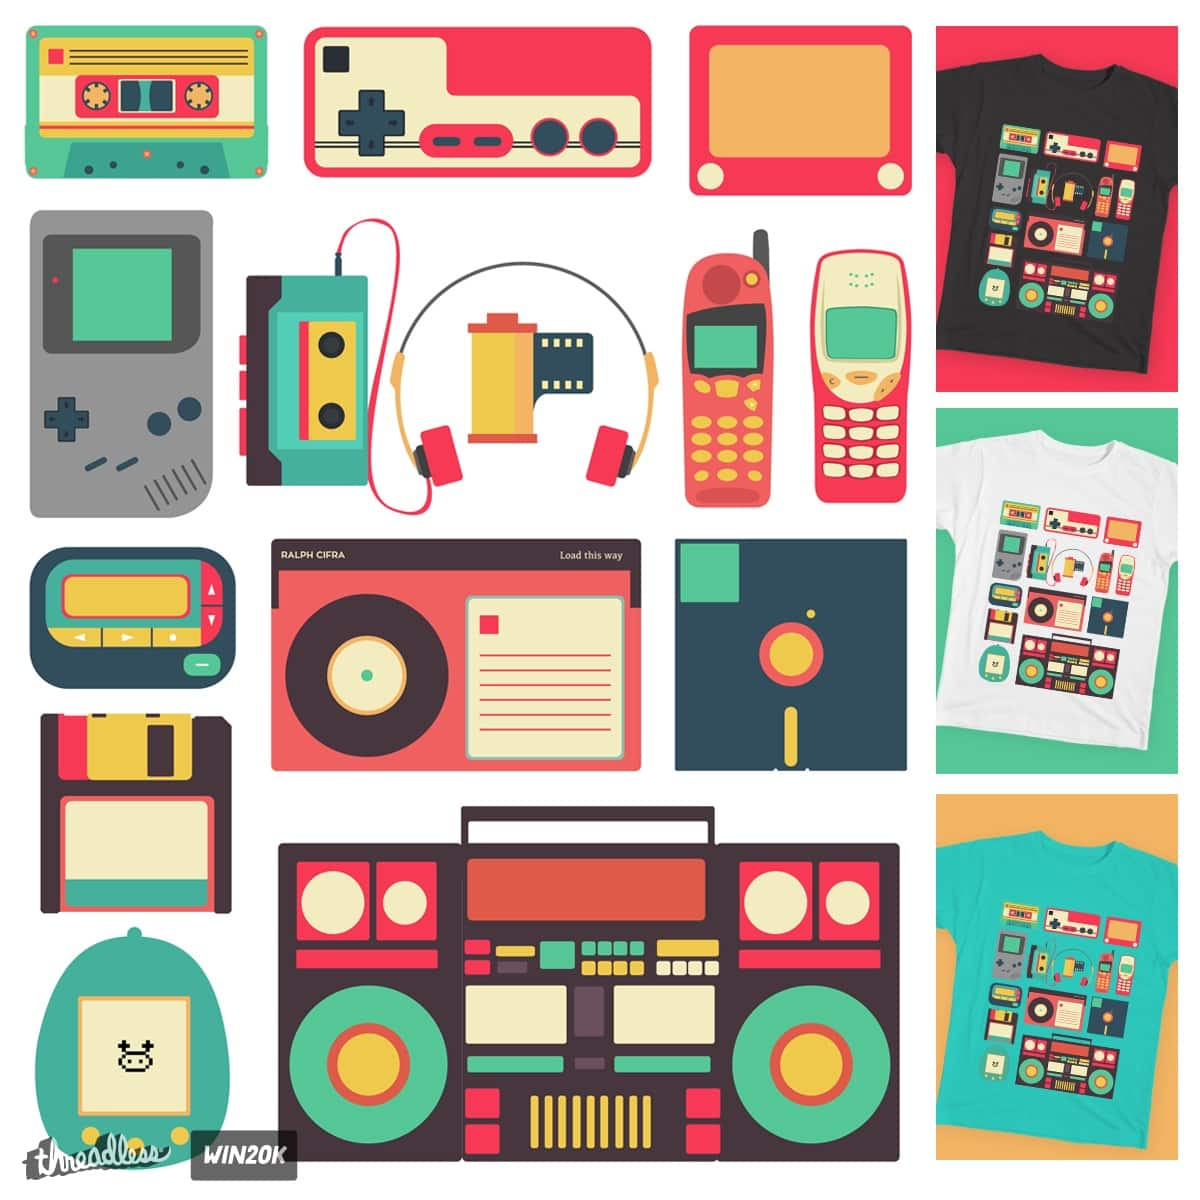 Retro Technology by rtcifra on Threadless